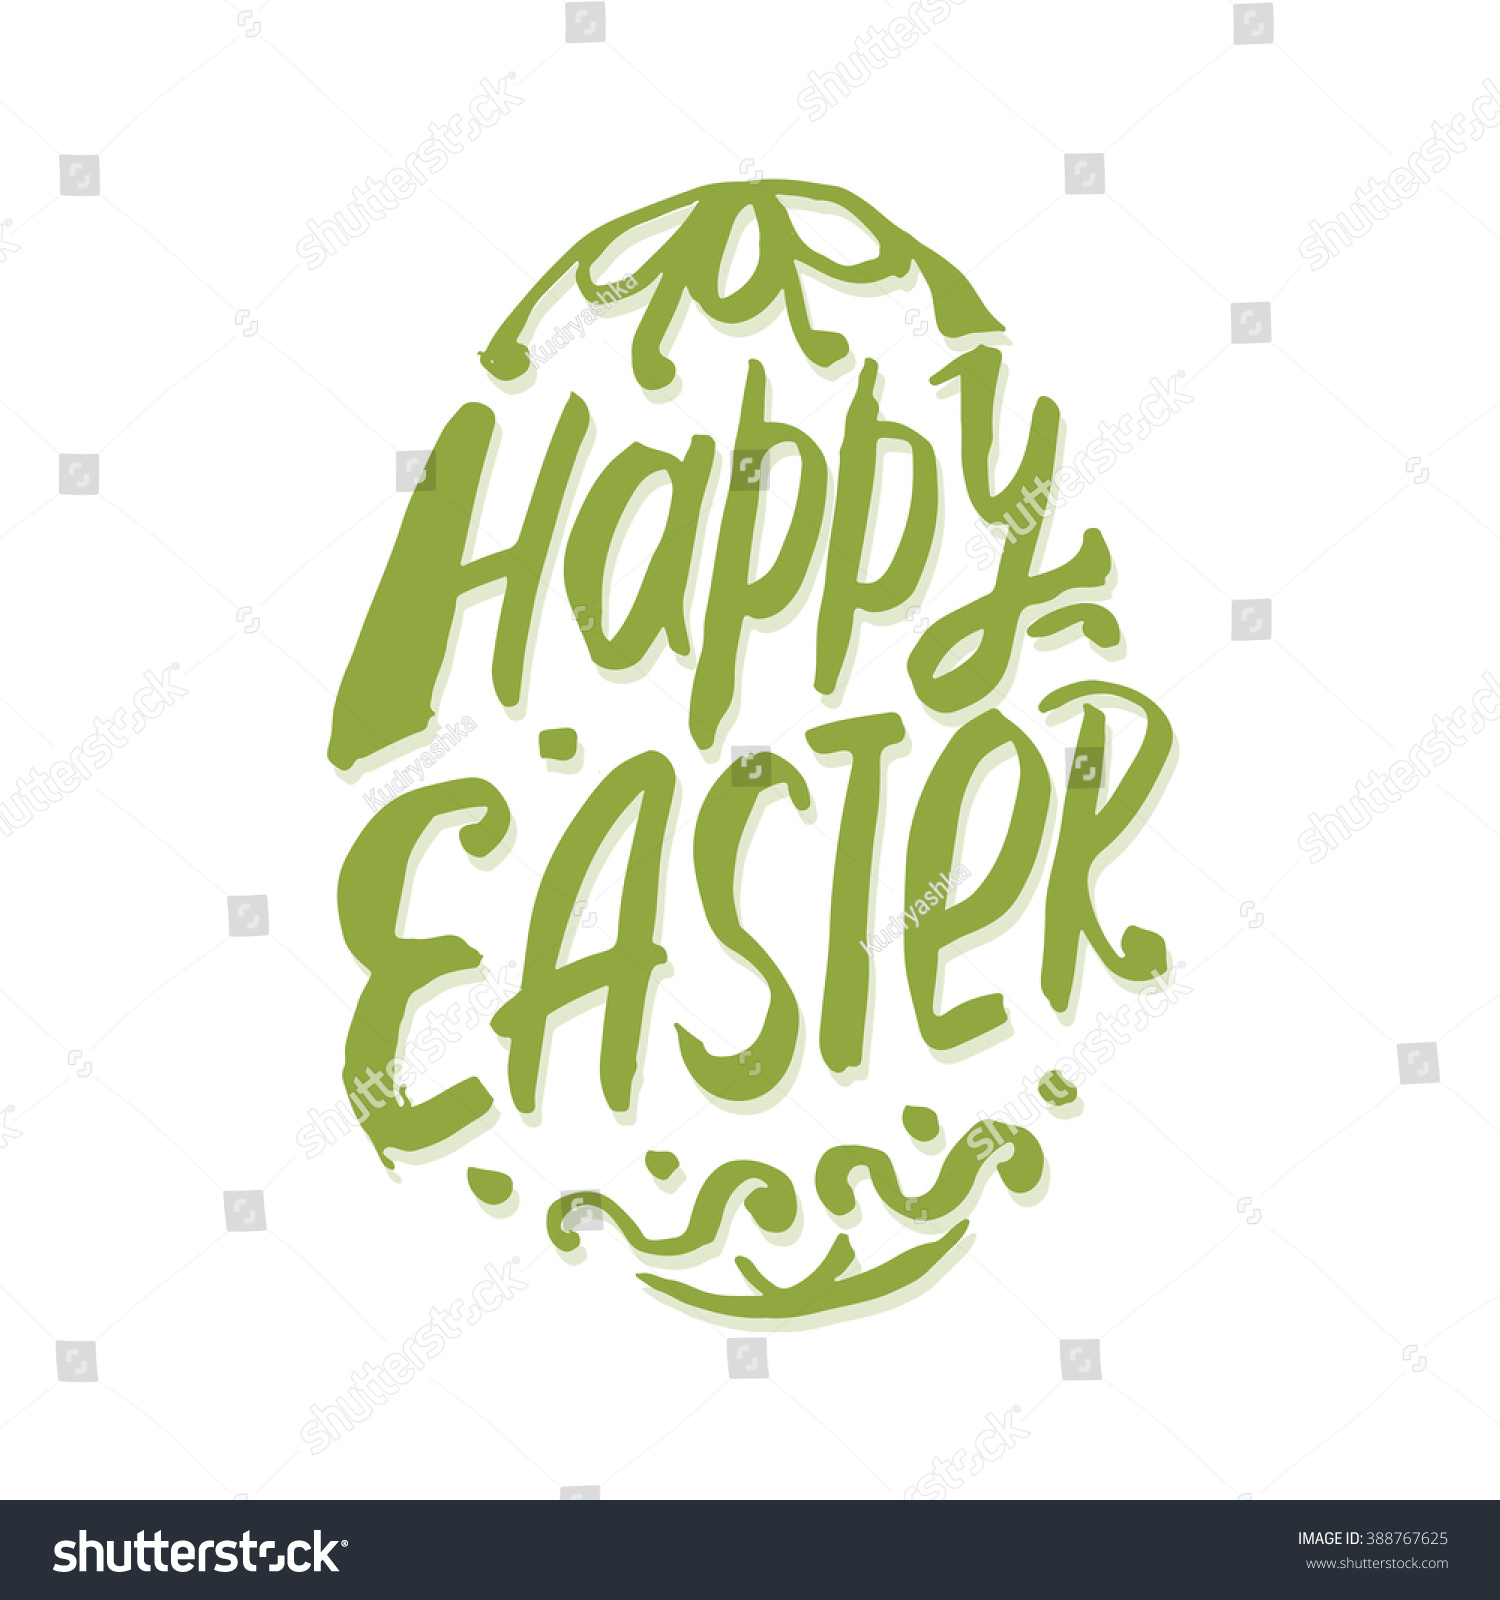 Happy easter calligraphy stock vector illustration